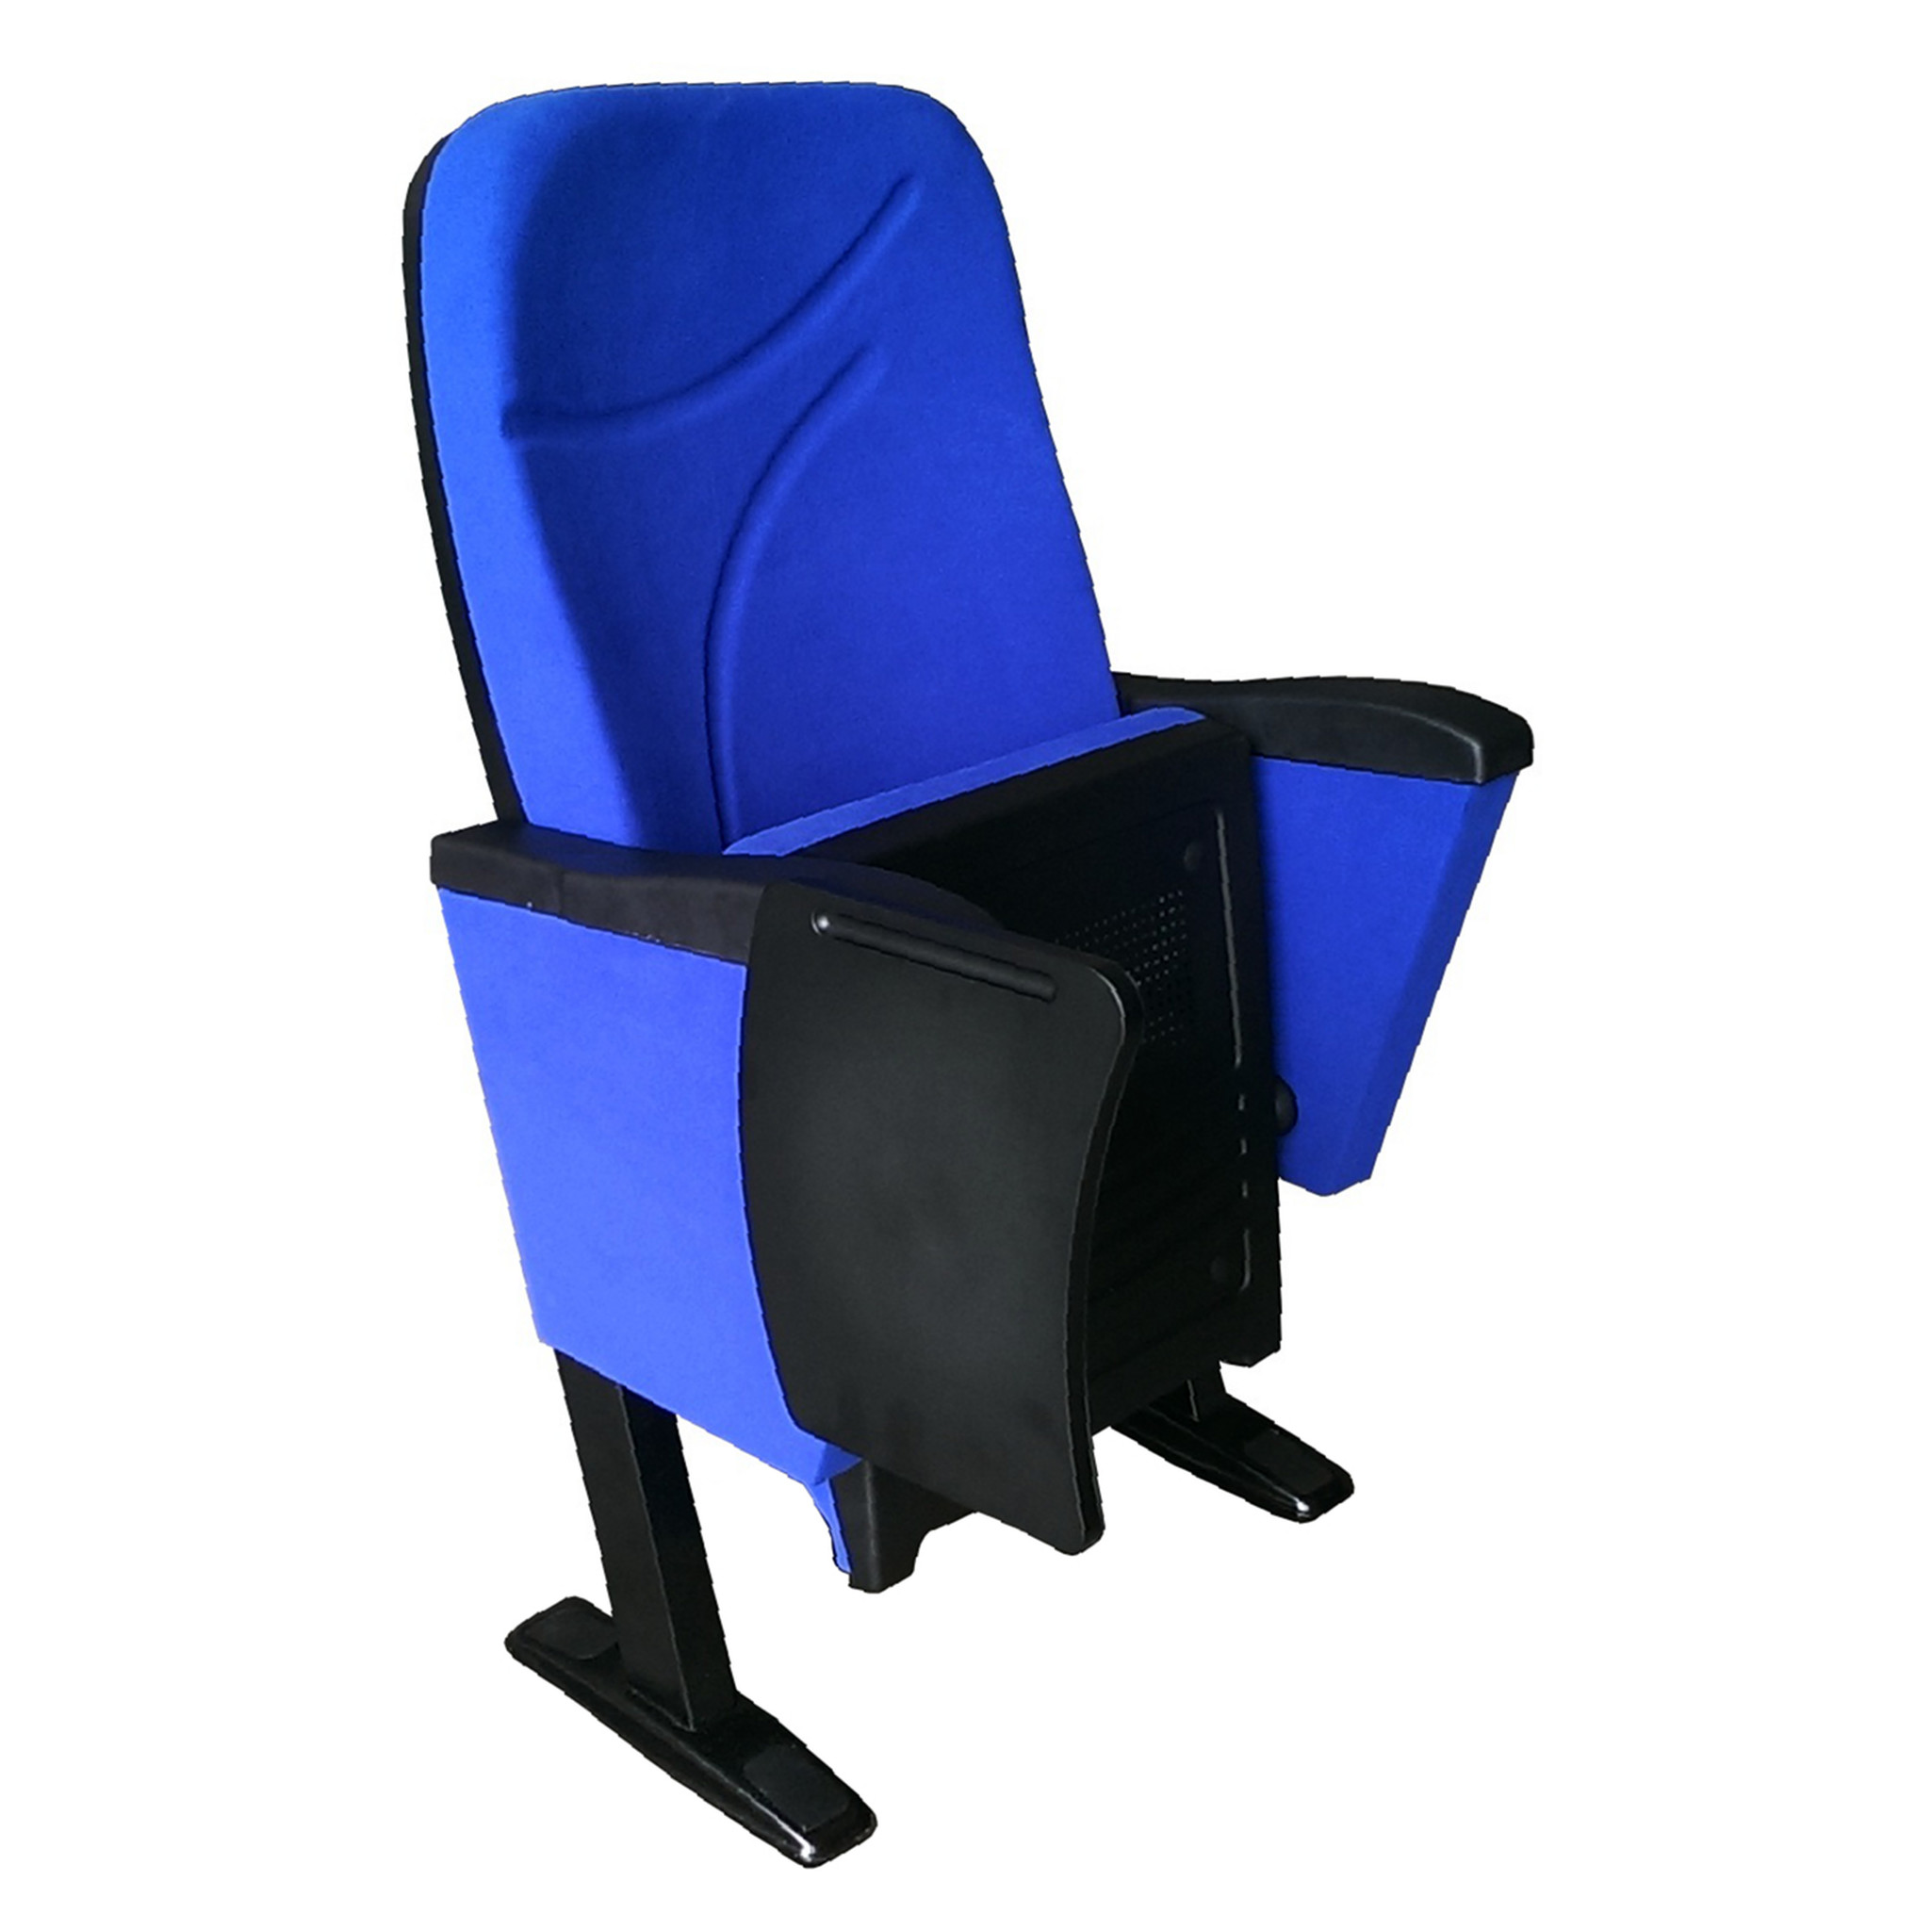 BOLTON Y40 - Auditorium, Theatre, Lecture Hall Chair With Writing Table (Plastic, Wooden or Polyurethange - Hidden Inside or Anti-Panic Mechanism) - Turkey - Seatorium - Public Seating Manufacturer